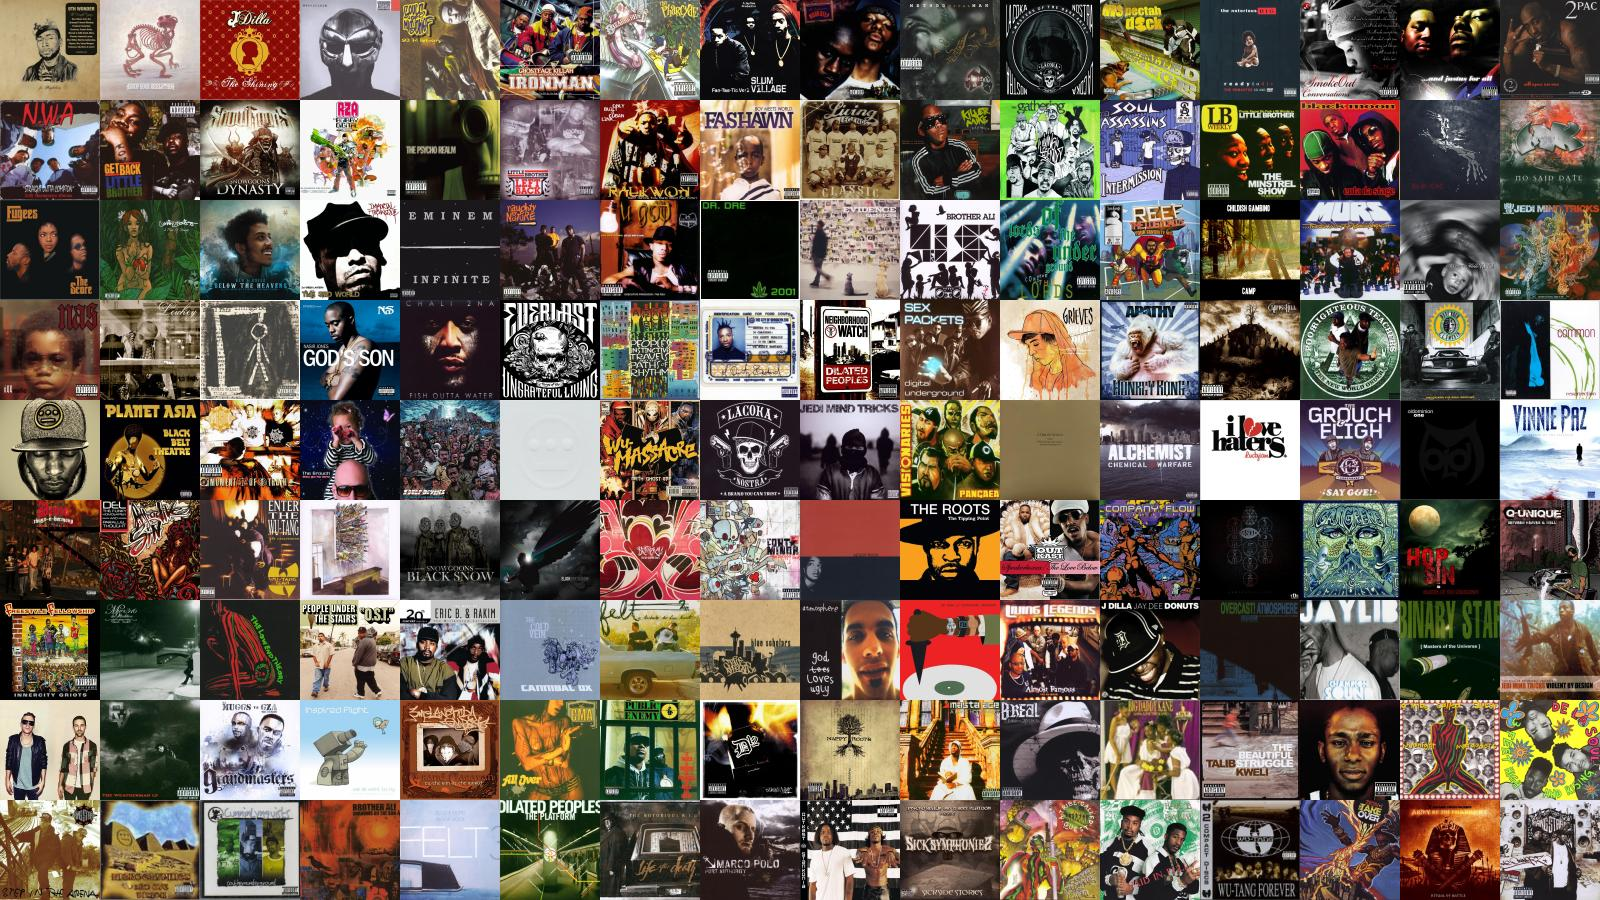 9th Wonder Wonder Year Aesop Rock Skelethon J Wallpaper ...